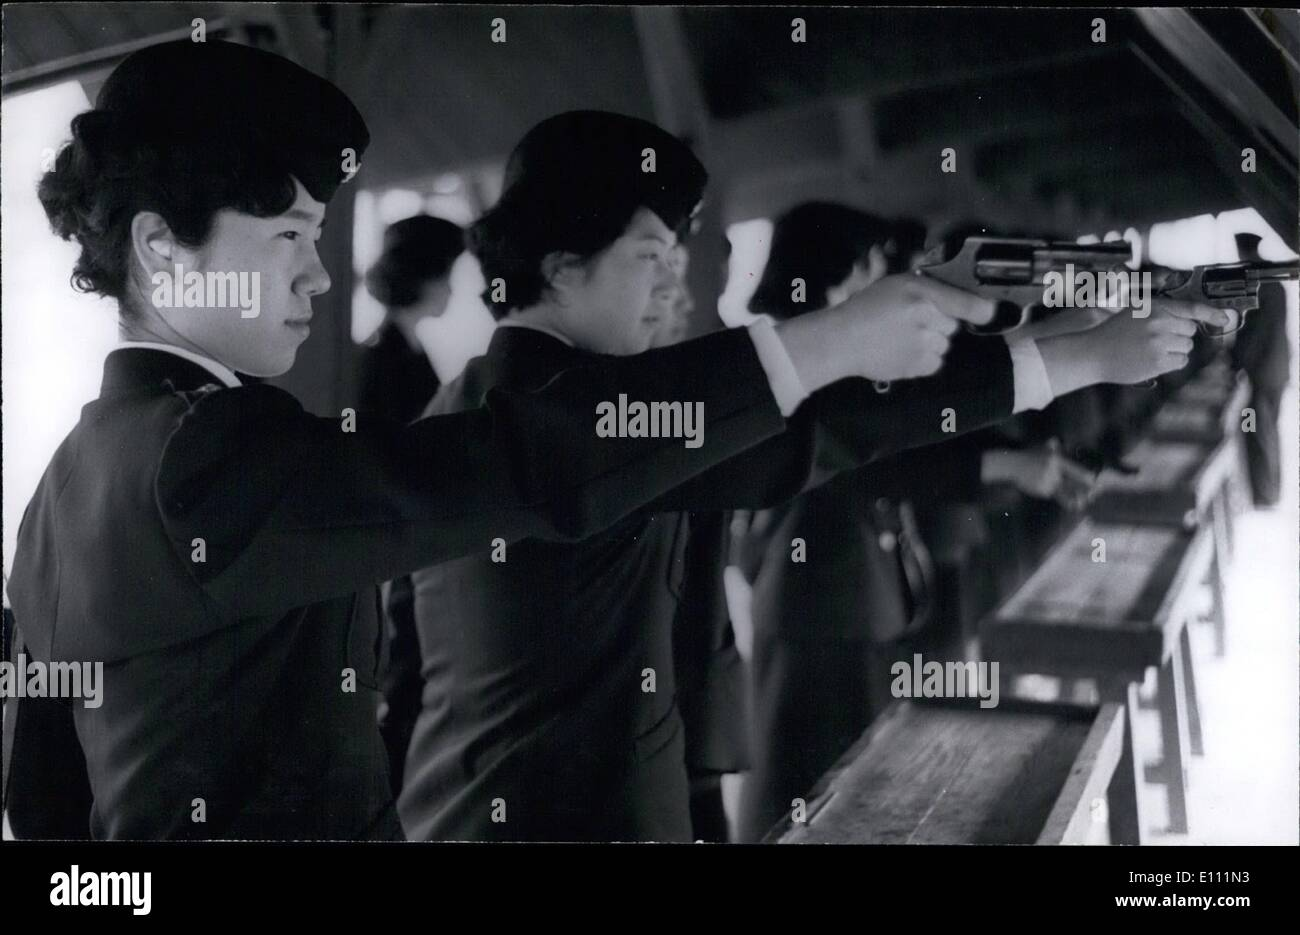 Apr. 04, 1975 - Japan Policewomen: While no decision has been made whether to arm the policewoman or not, they have undergone revolver training at the shooting range, and are prepared to go armed if required. - Stock Image